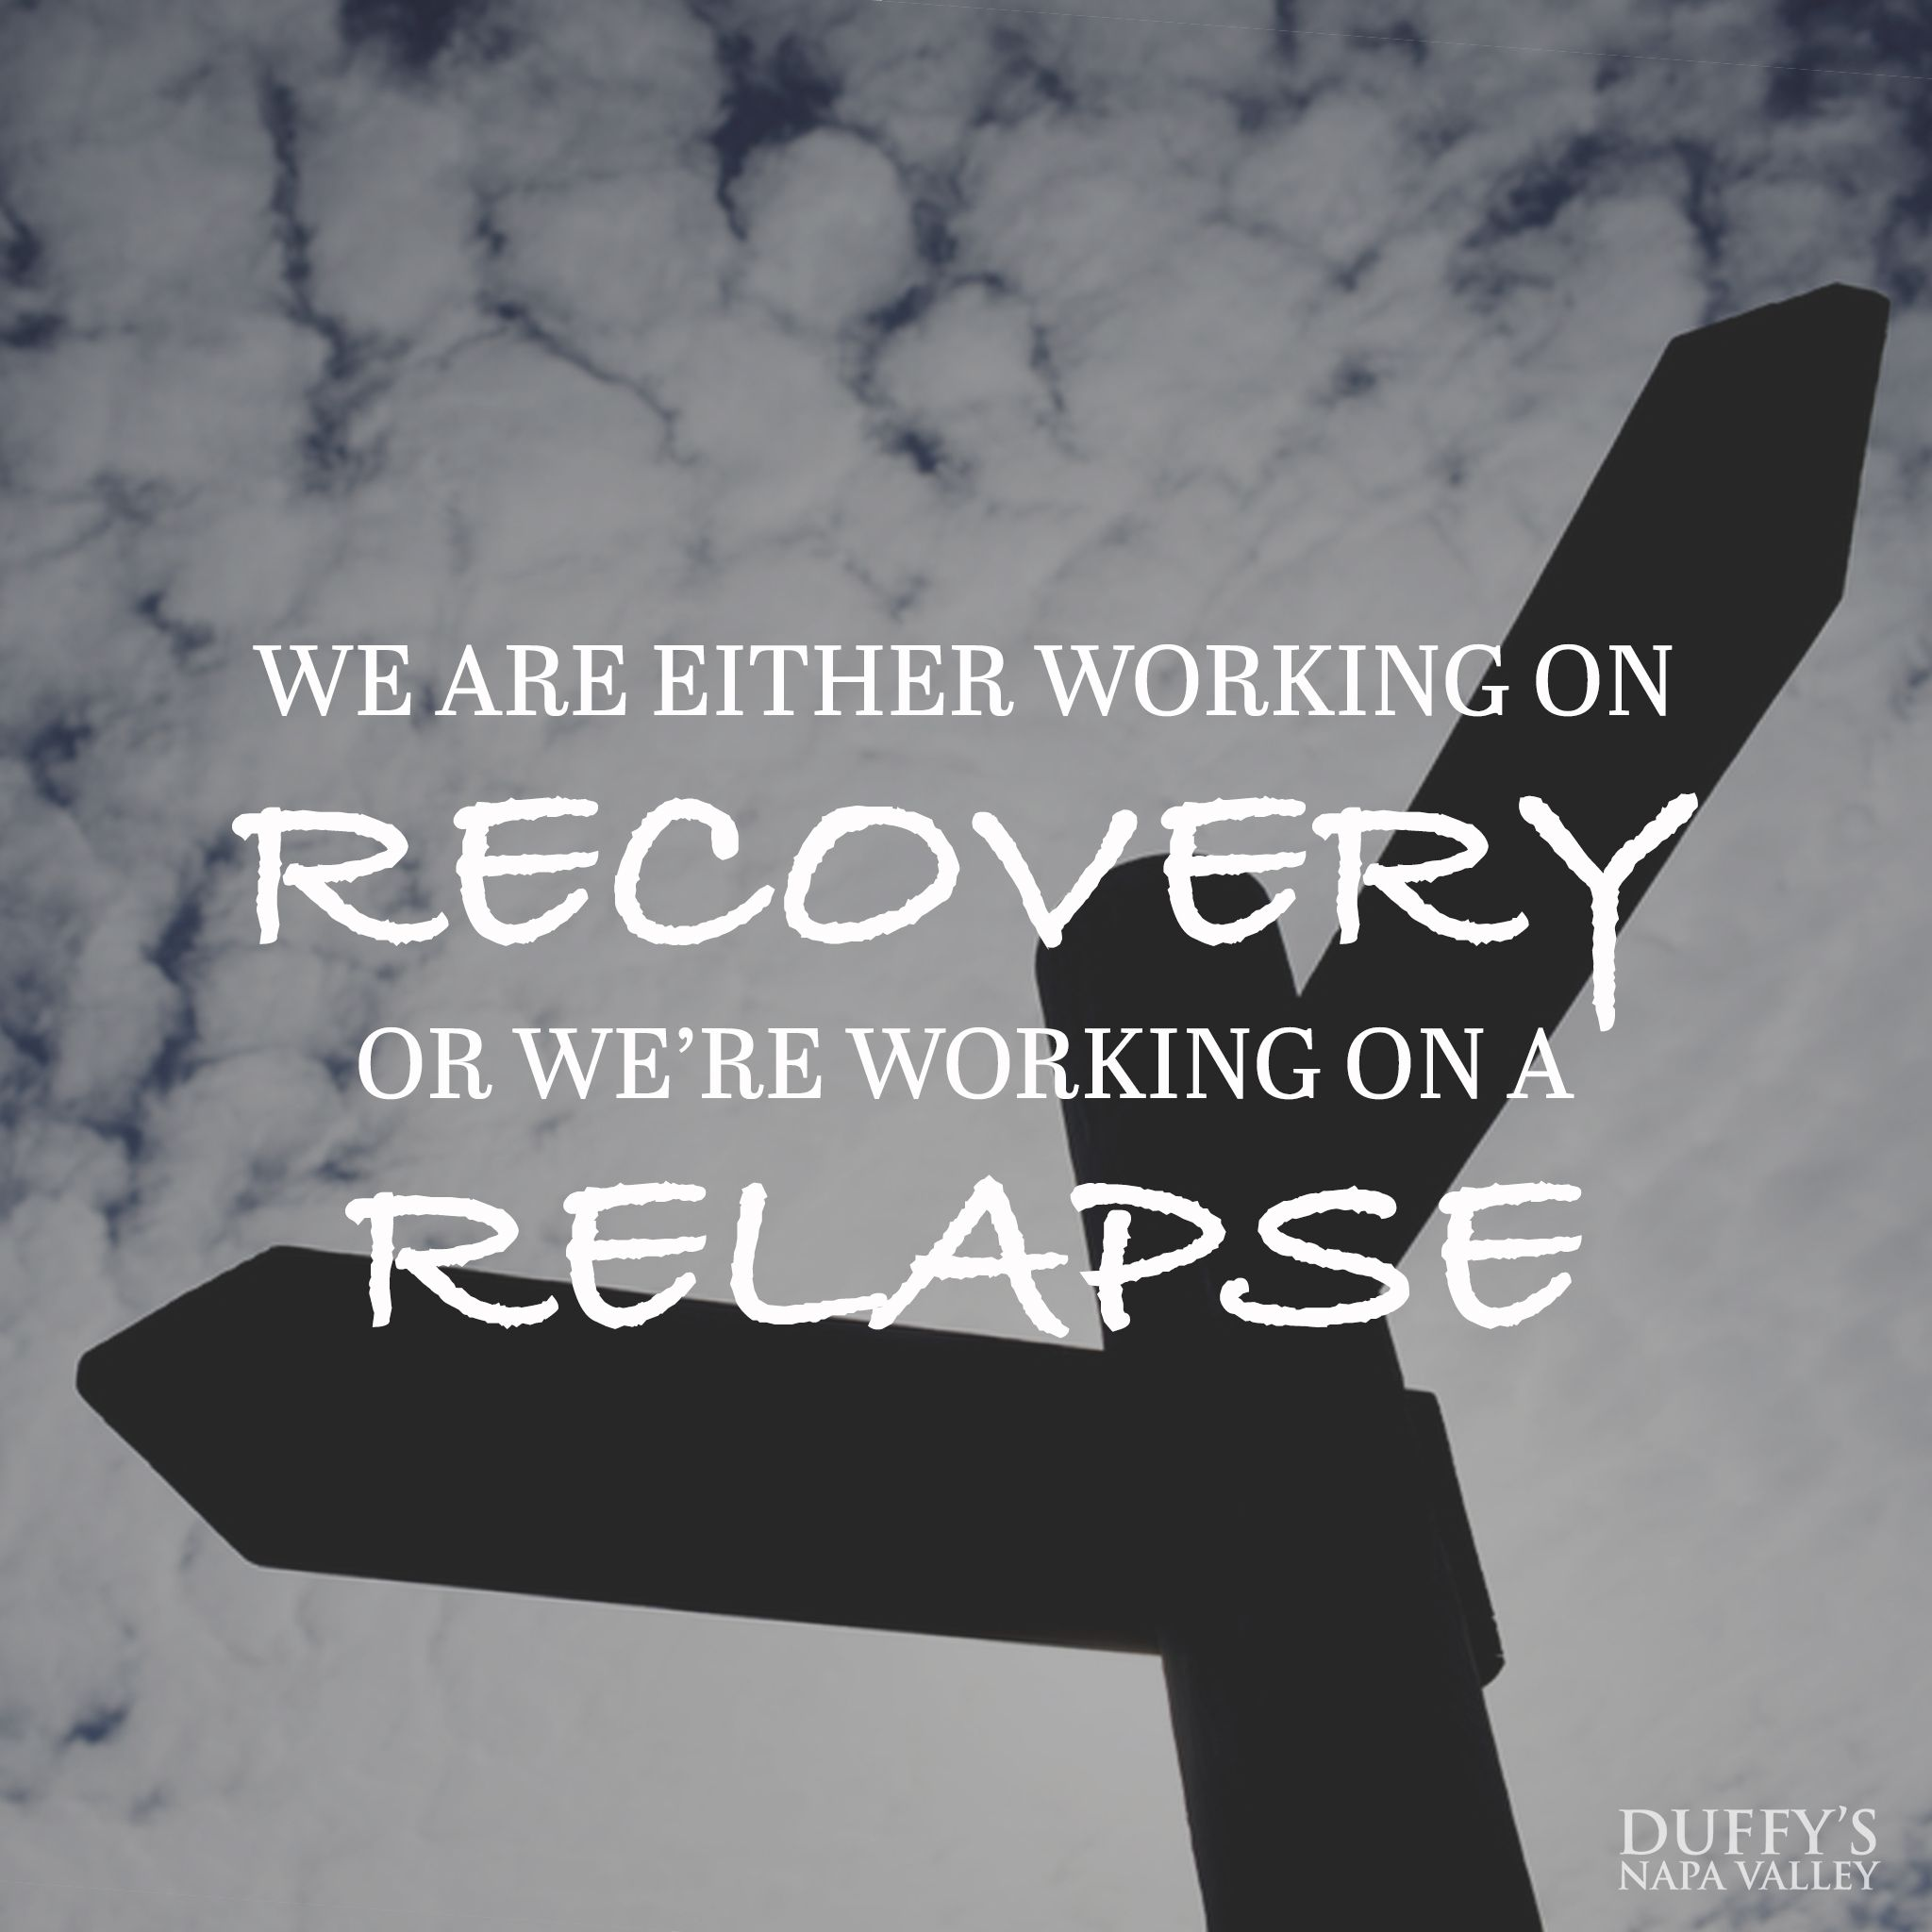 Addiction Recovery Quotes: We Are Either Working On Recovery Or We're Working On A